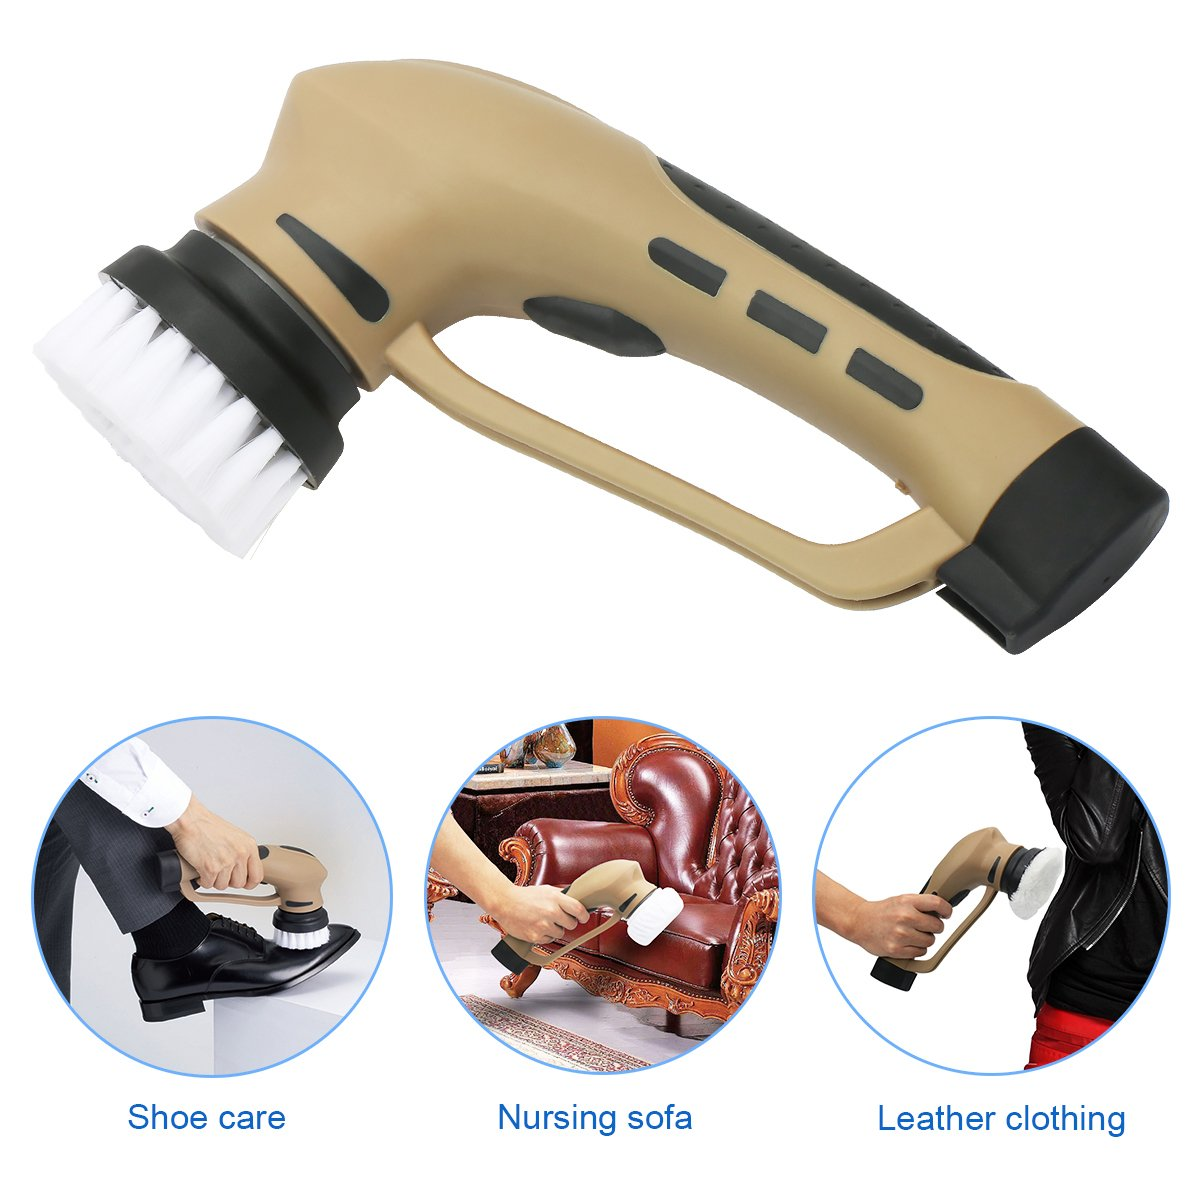 EVERTOP Mini Multifunctional Electric Shoe Polisher Cleaning Brush, Shoe Shine Kit for Suede Leather Nubuck Shoe/Boot with Rechargeable Battery, Hand-Held Portable Leather Shine Kit Brown